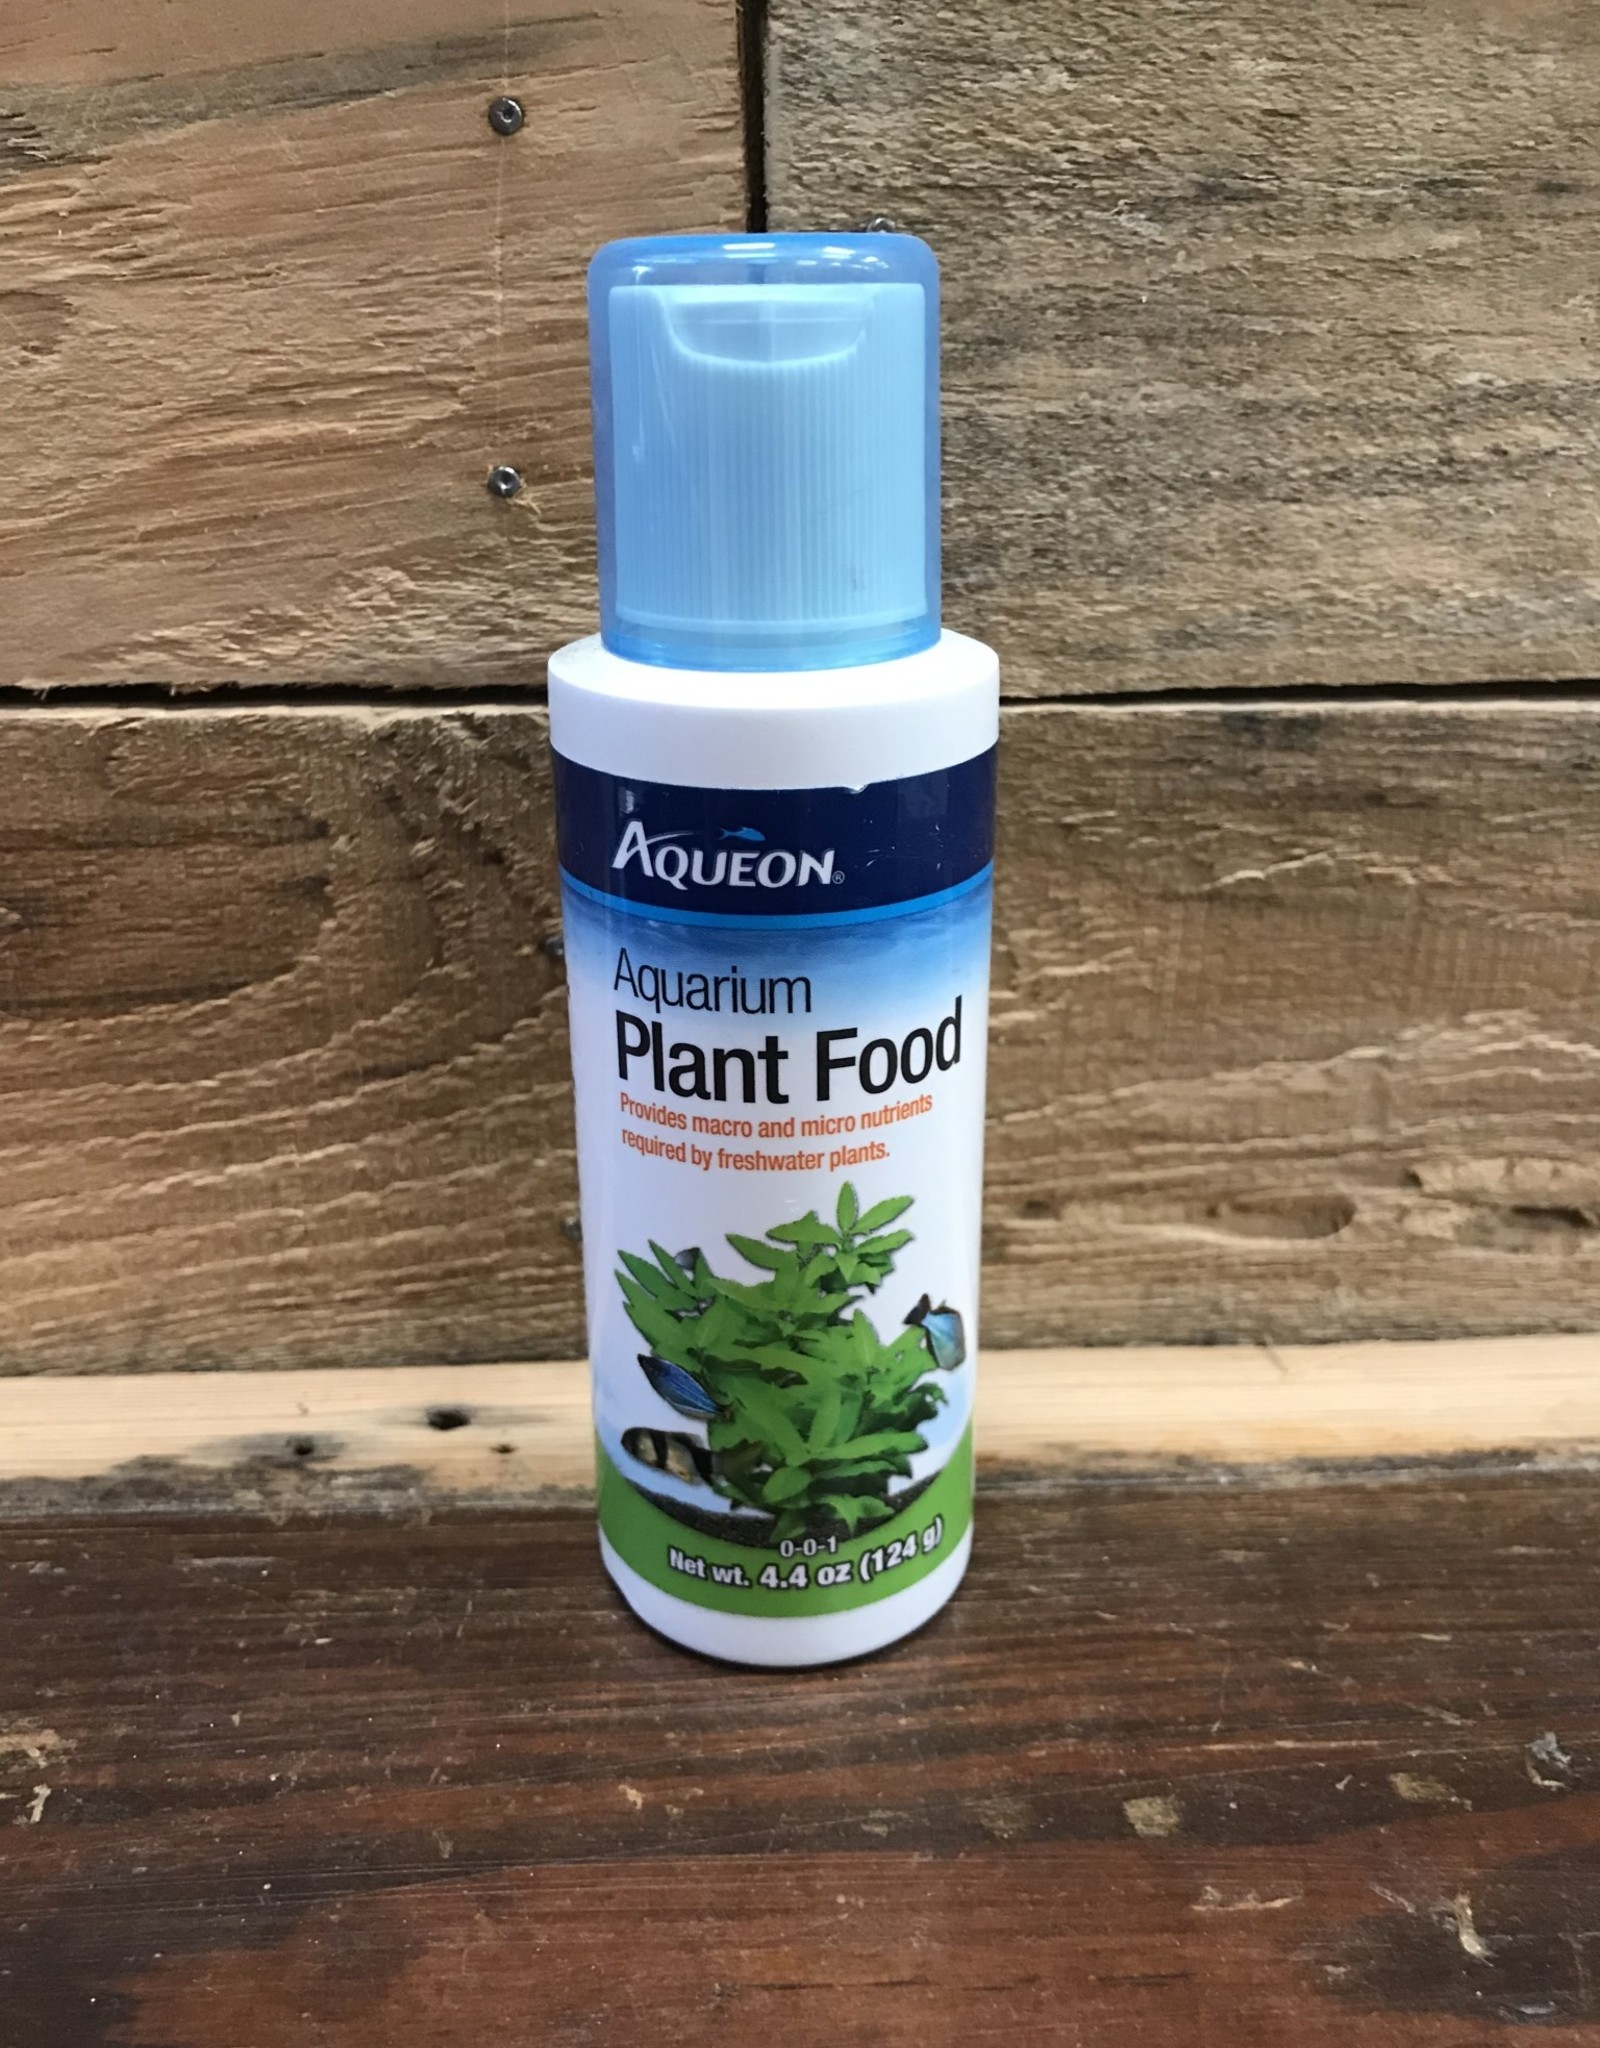 Aqueon AQUEON 4 OZ. AQUARIUM PLANT FOOD